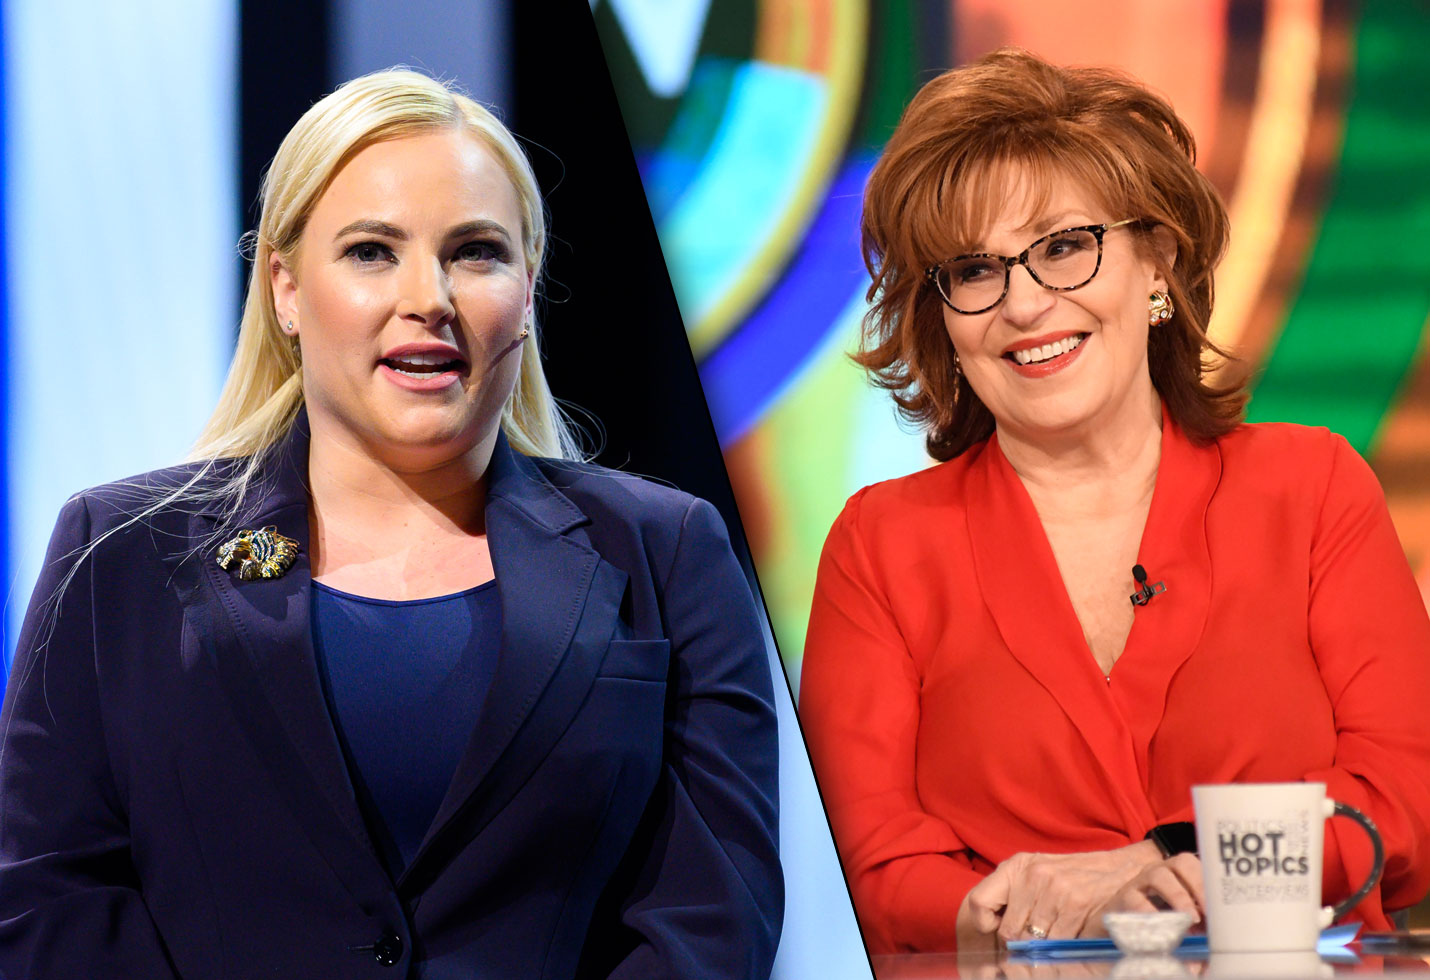 The view meghan mccain disrespects joy behar video